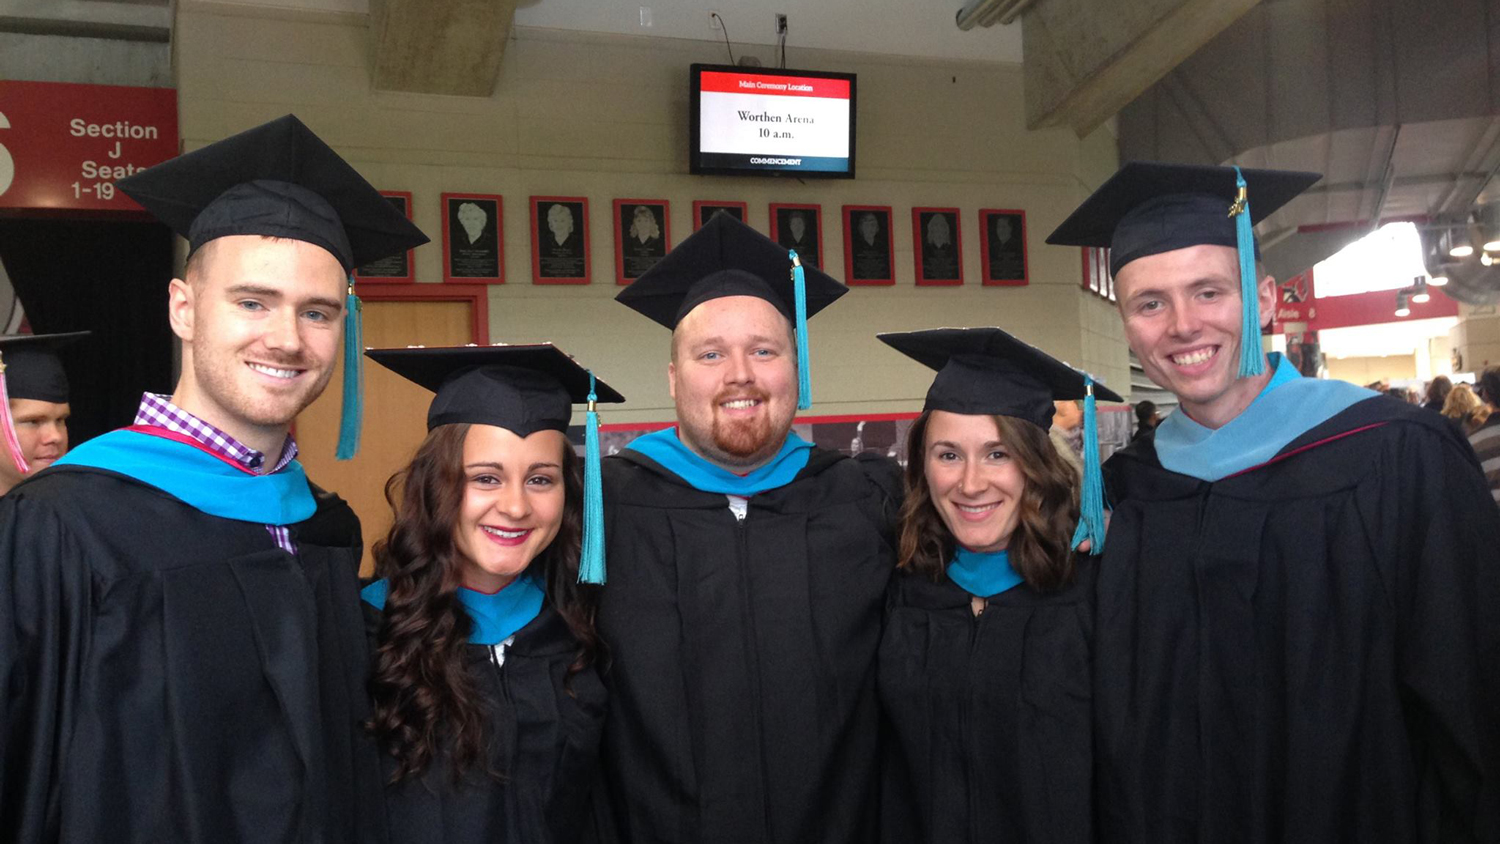 students at commencement in Worthen Arena